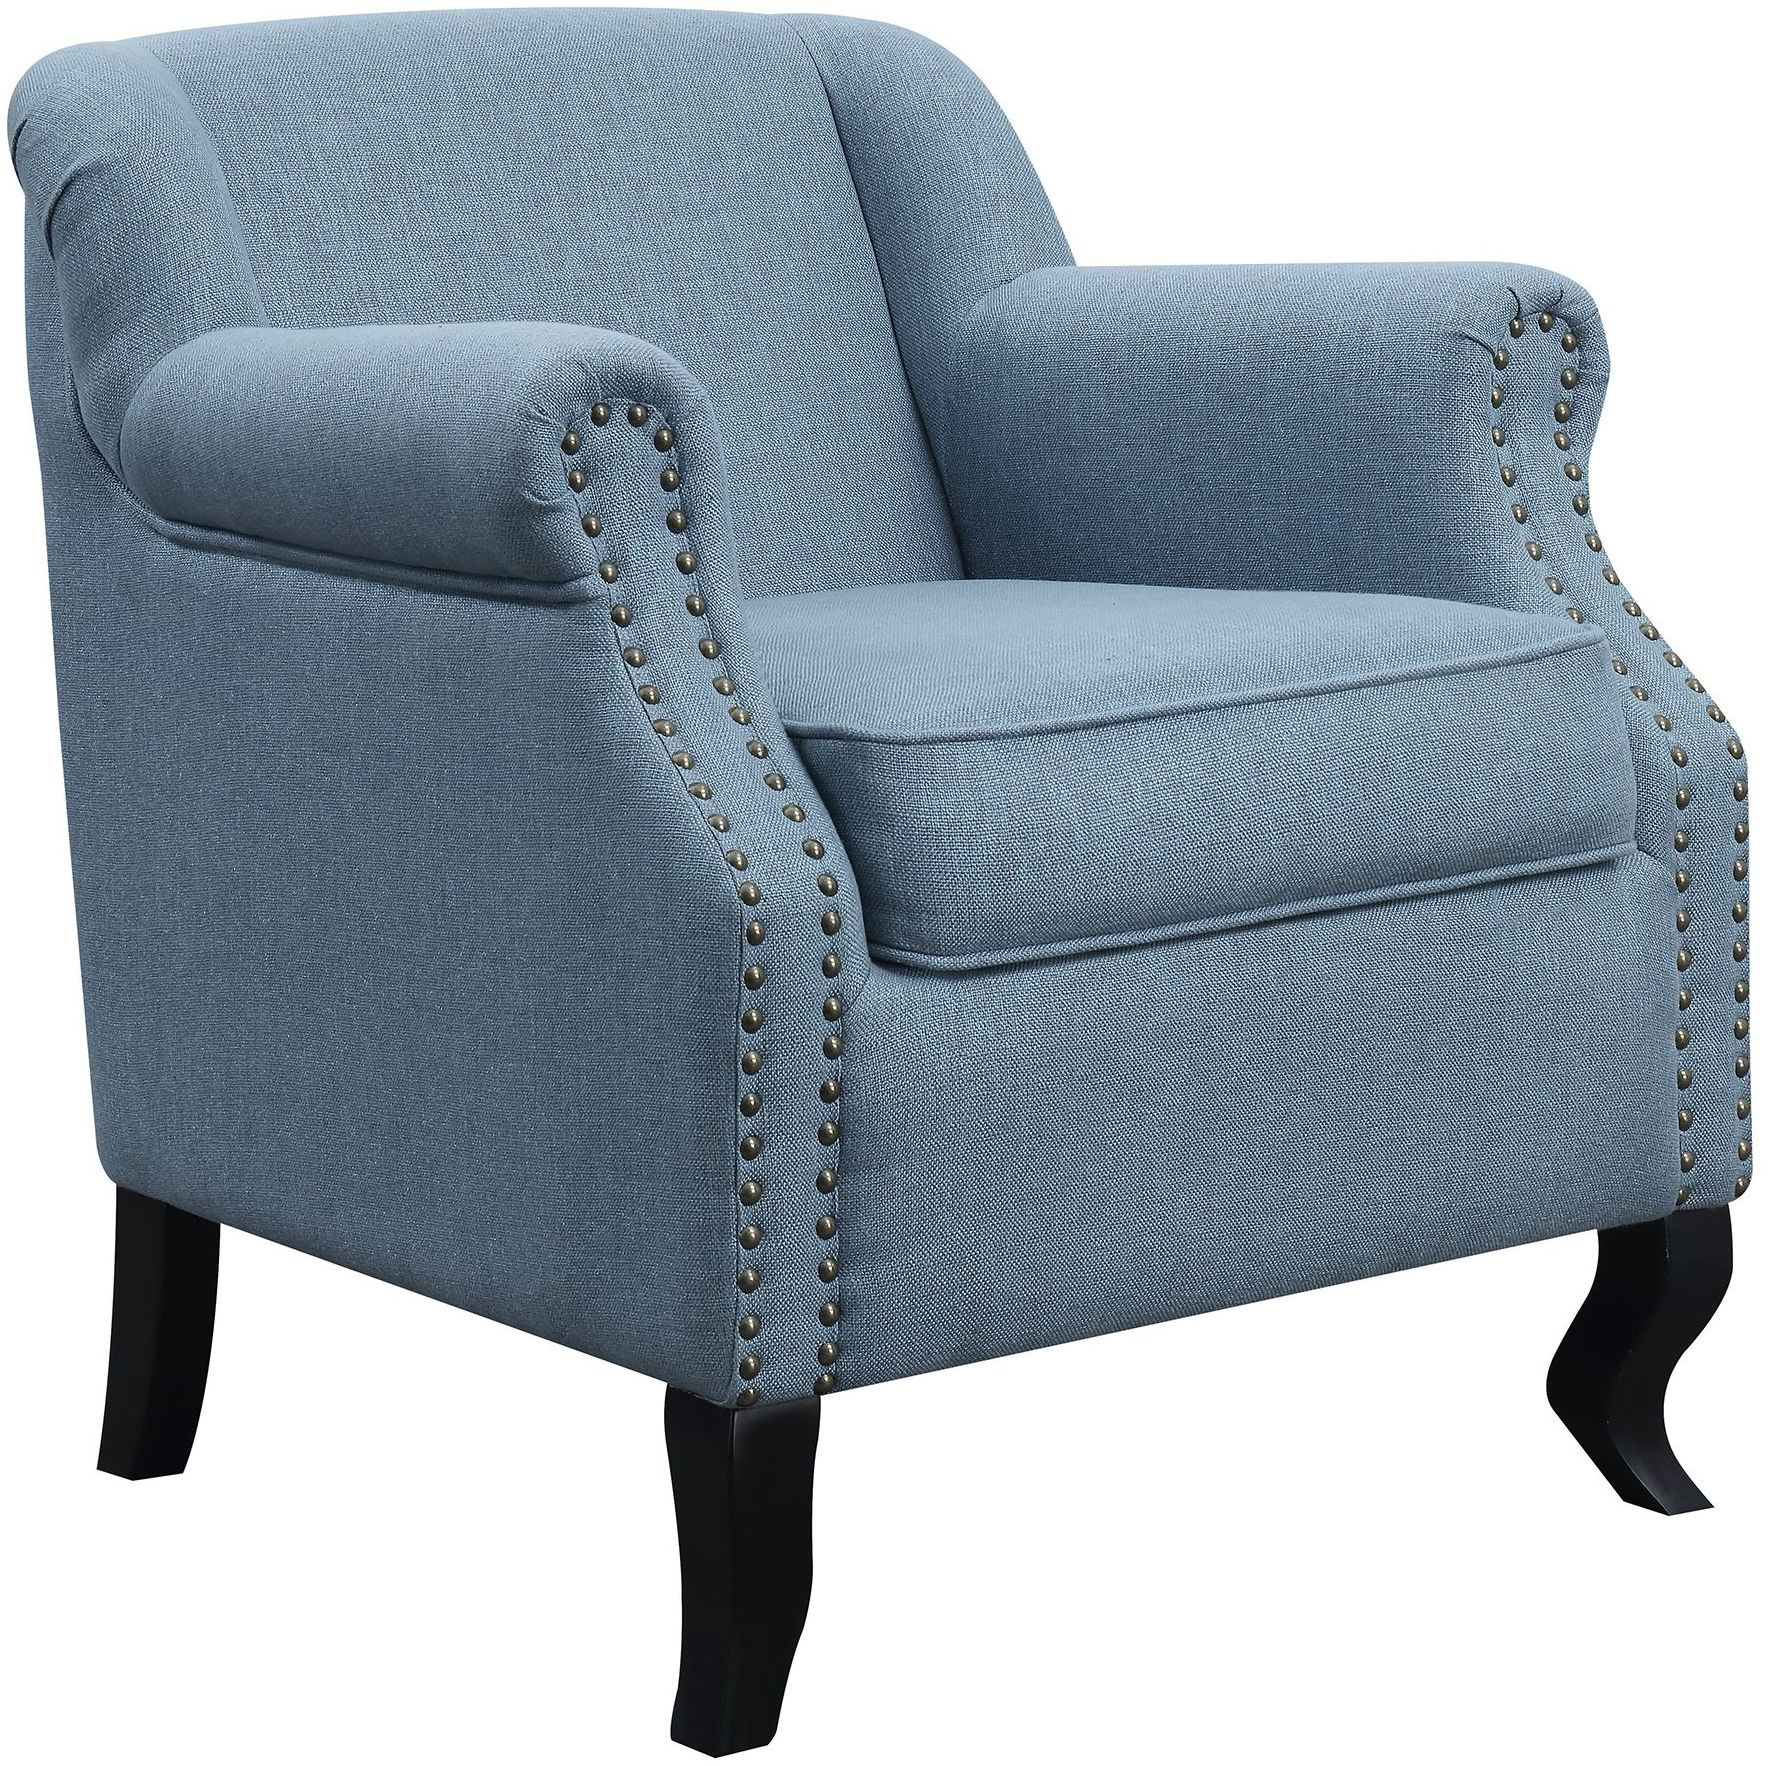 Coaster Light Blue Accent Chair  Light Collection 6 Reviews  1StopBedRoomscom